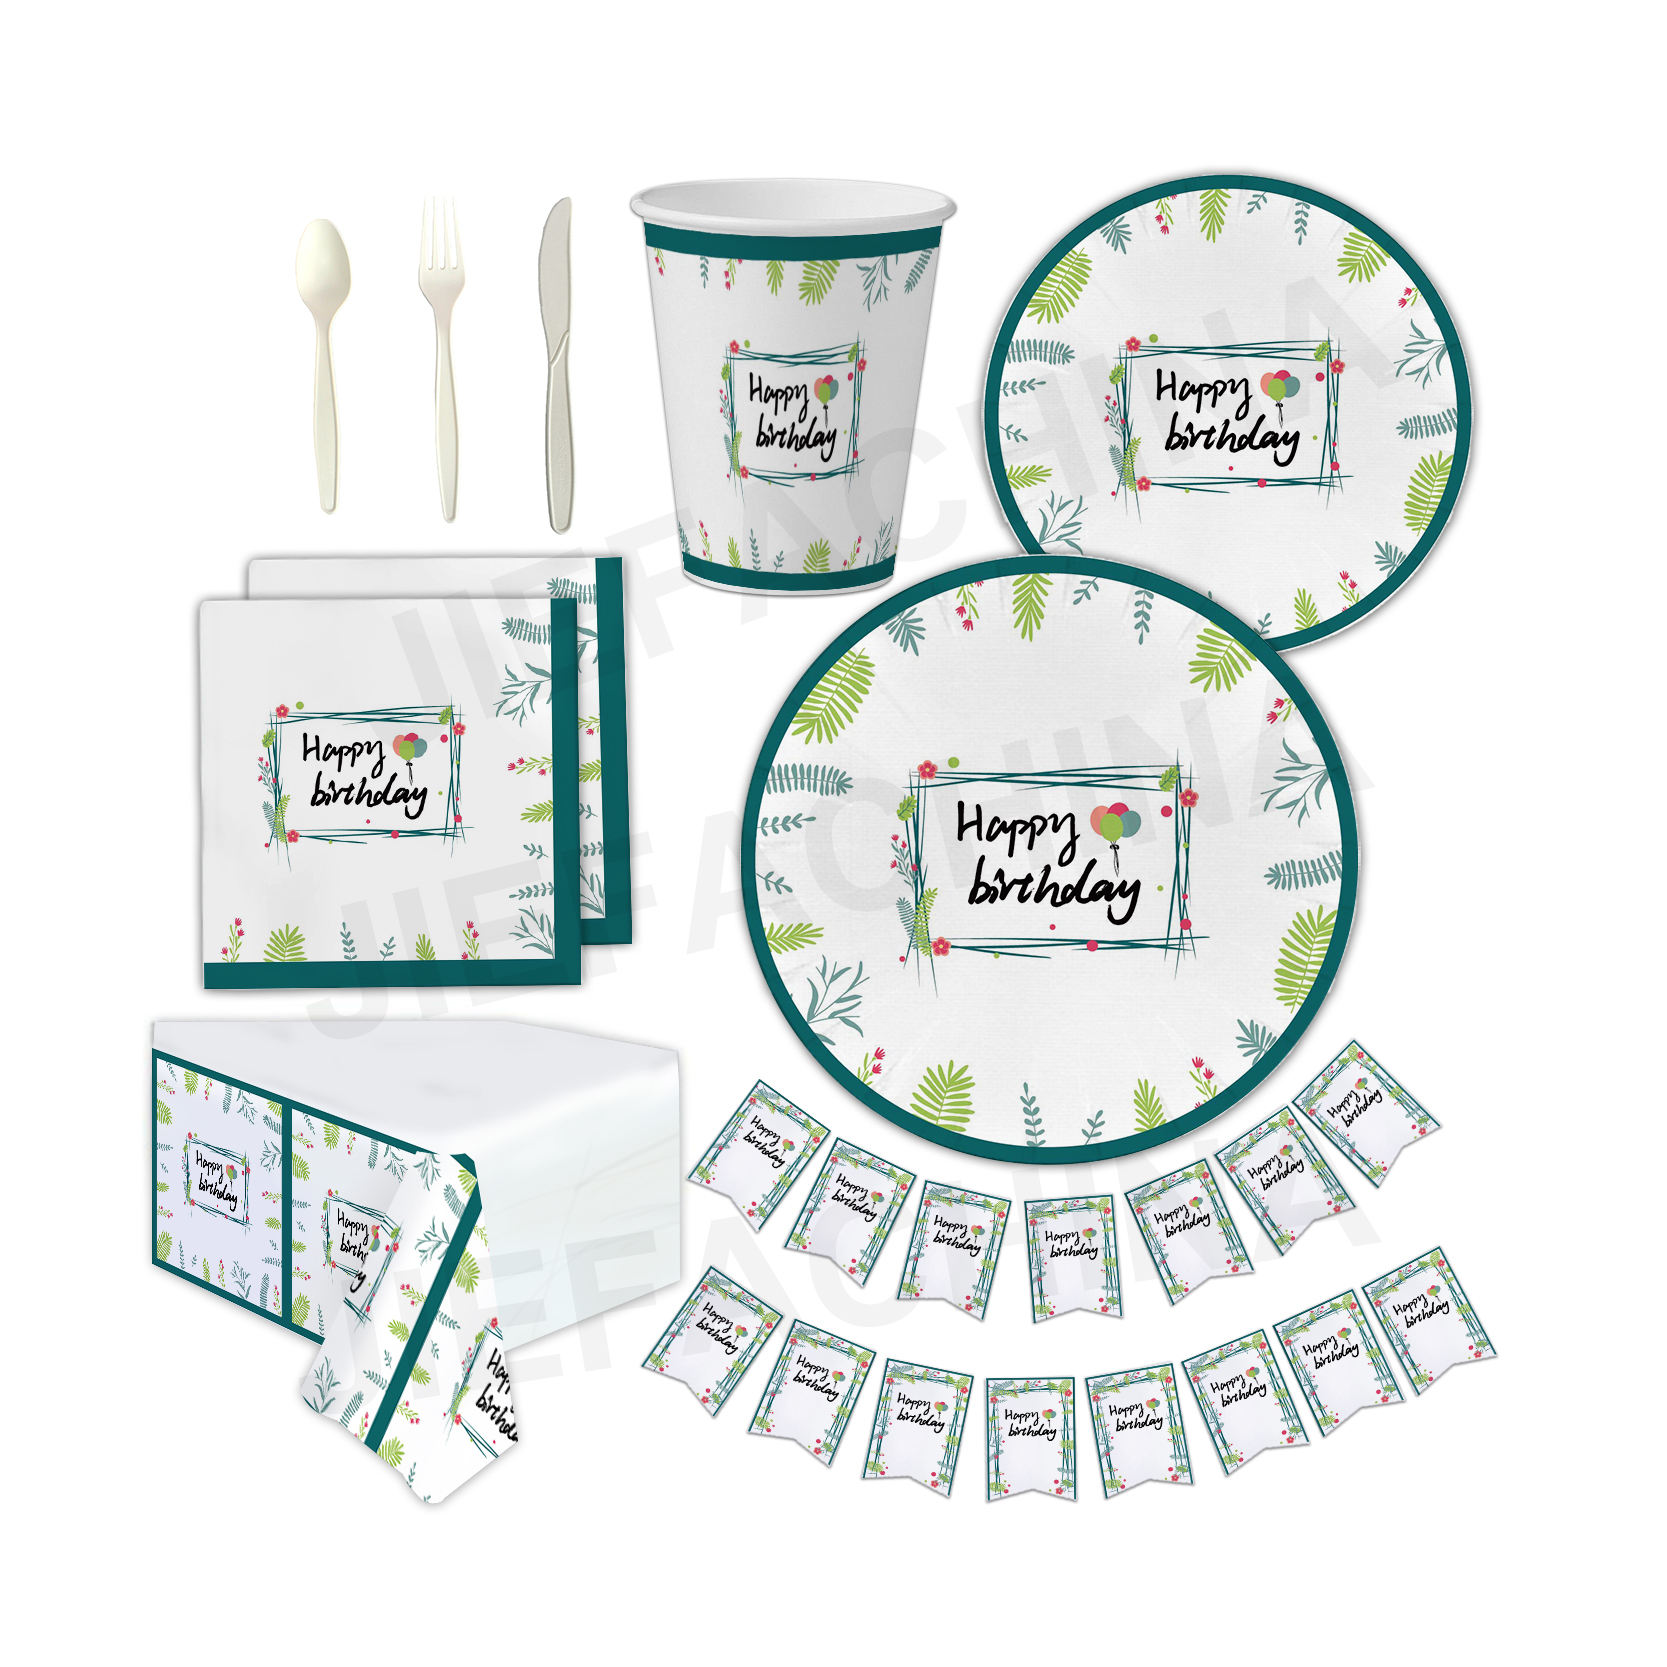 Hawaii Luau Summer and Birthday Party Supplies Serves 24 Includes Plates, Knives, Spoons, Forks, Cups and Napkins